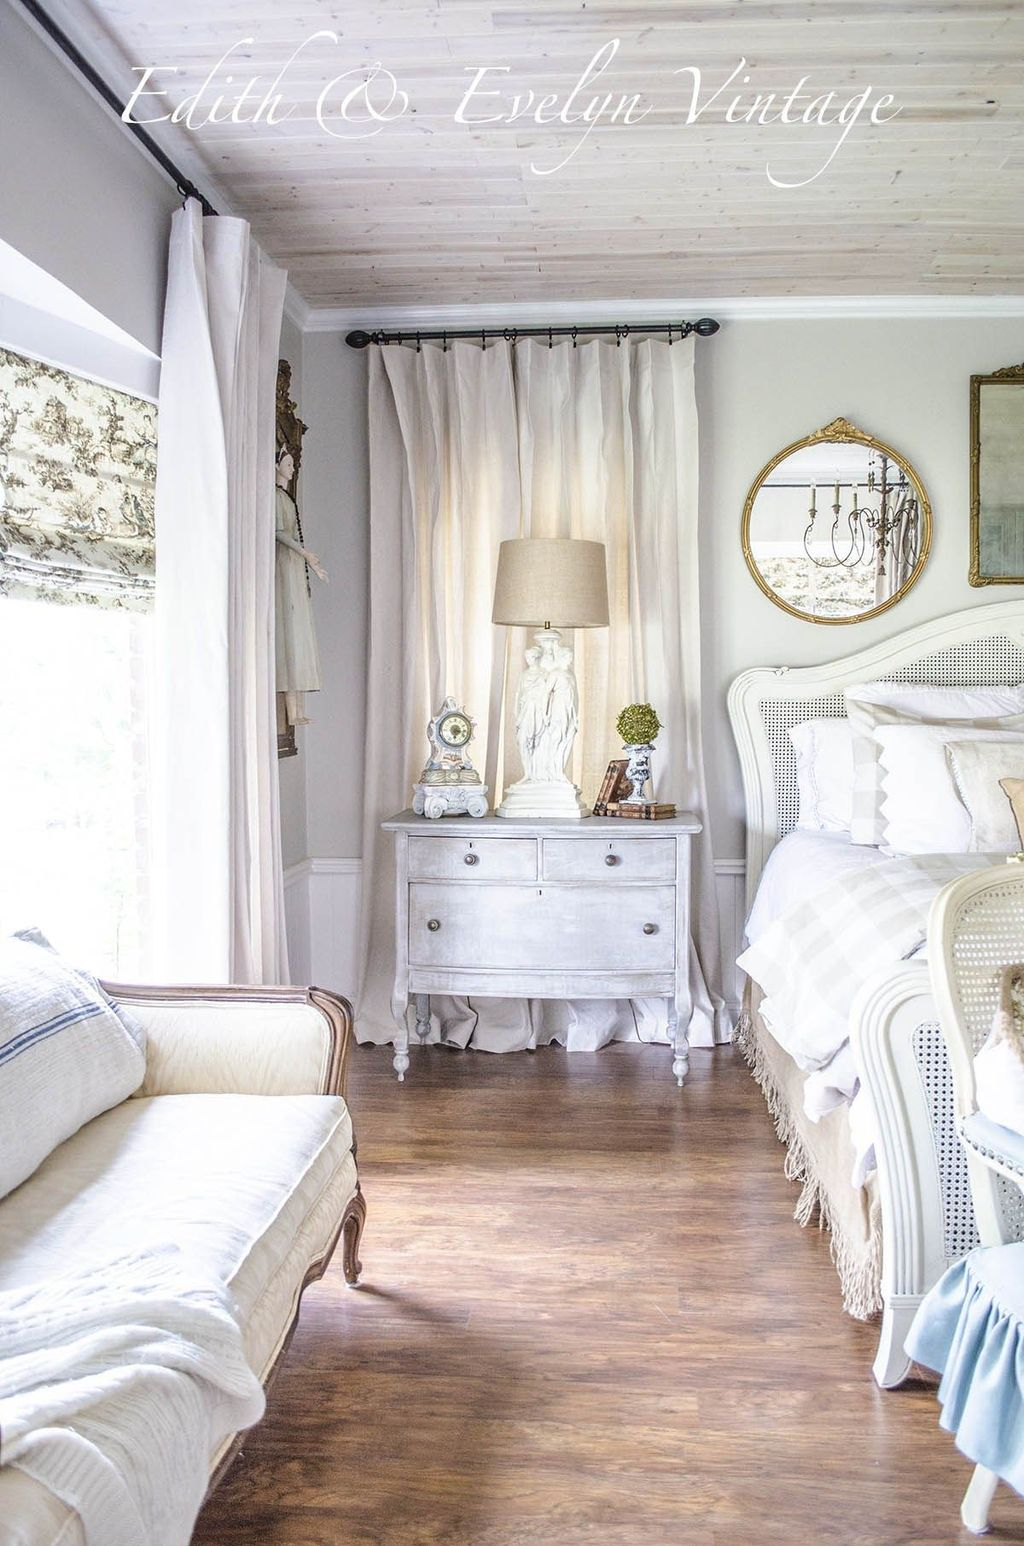 Cool French Country Master Bedroom Design Ideas With Farmhouse Style 14